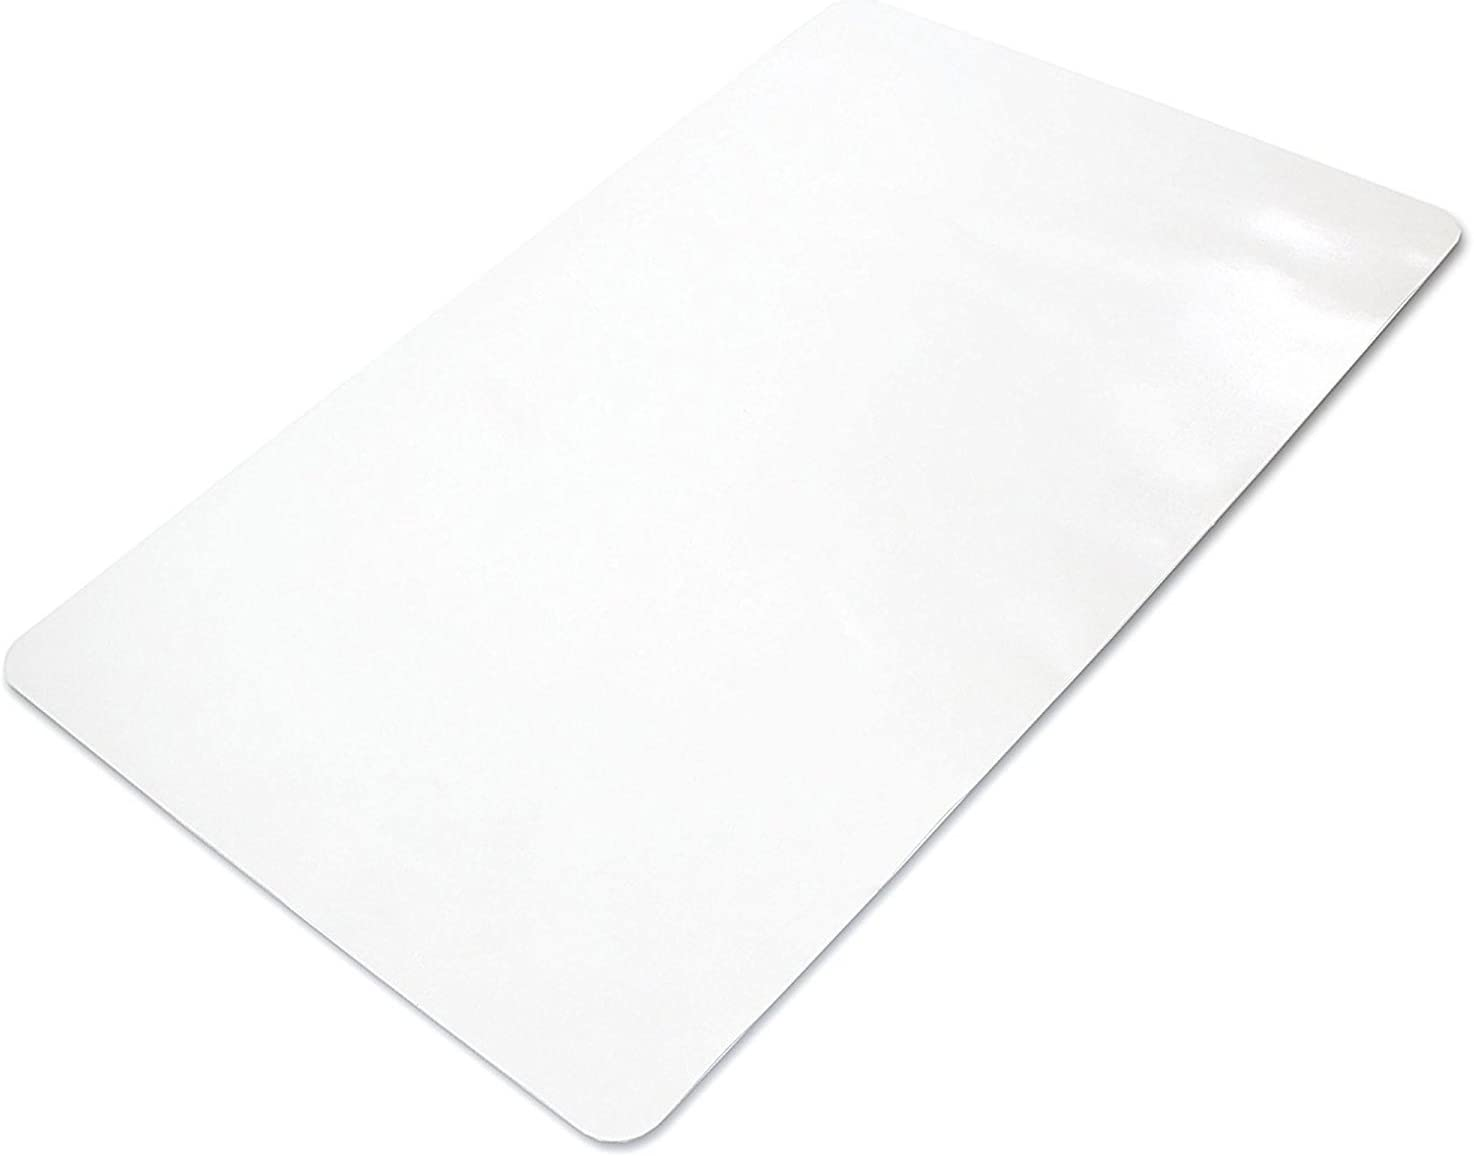 Office Chair Mat for Hard Floors 59 x 47 - Clear Hardwood Mat for Desk Chairs